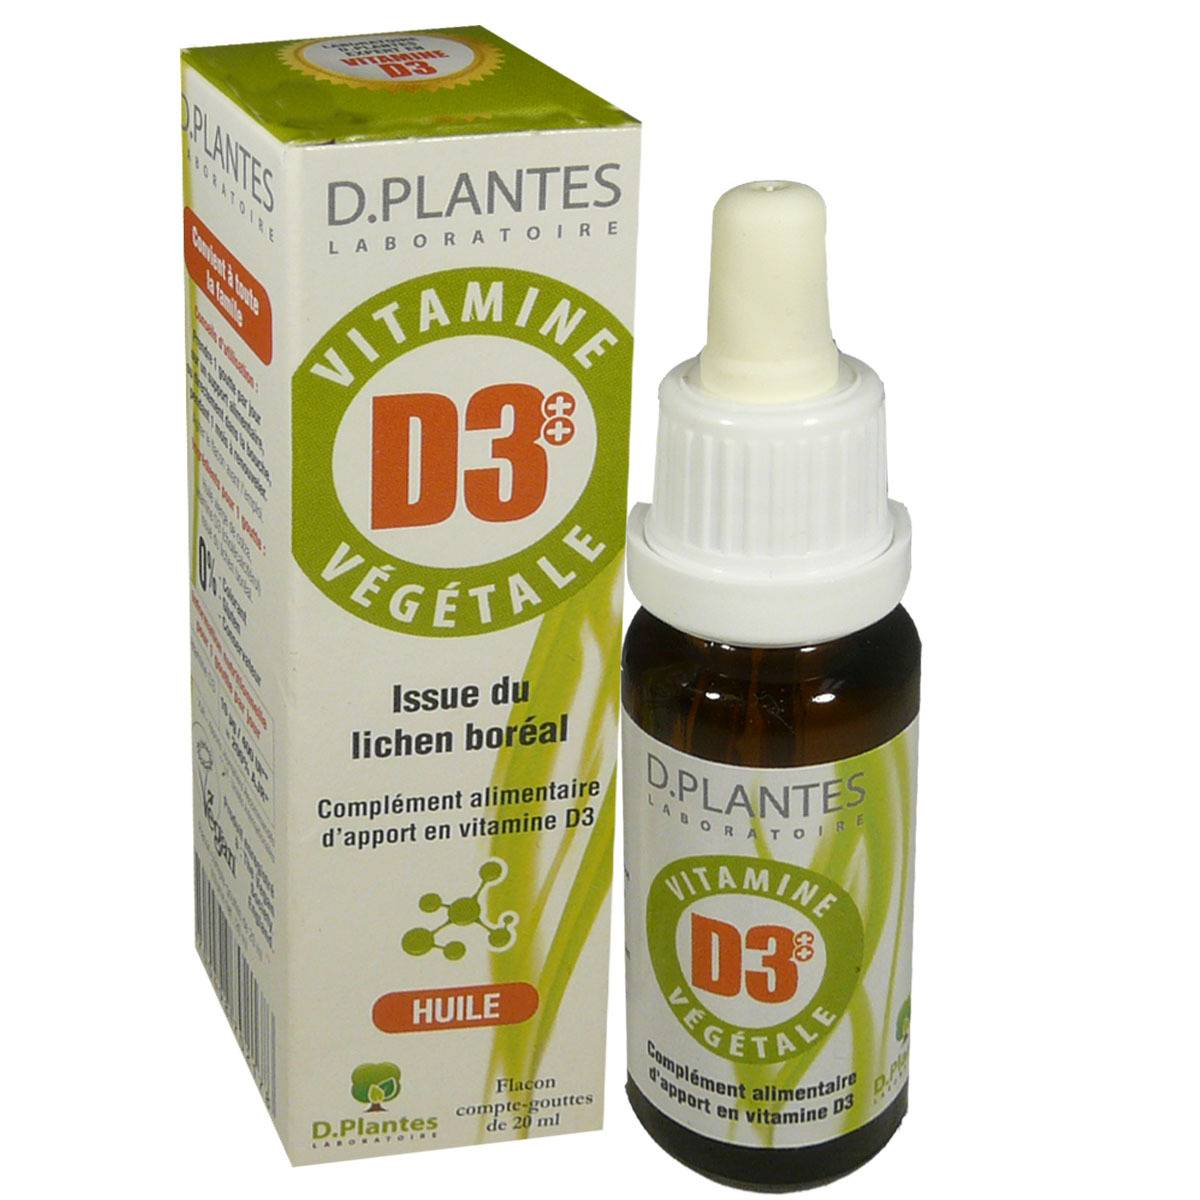 D. PLANTES Vitamine vegetale vitamines d3 huile 20 ml